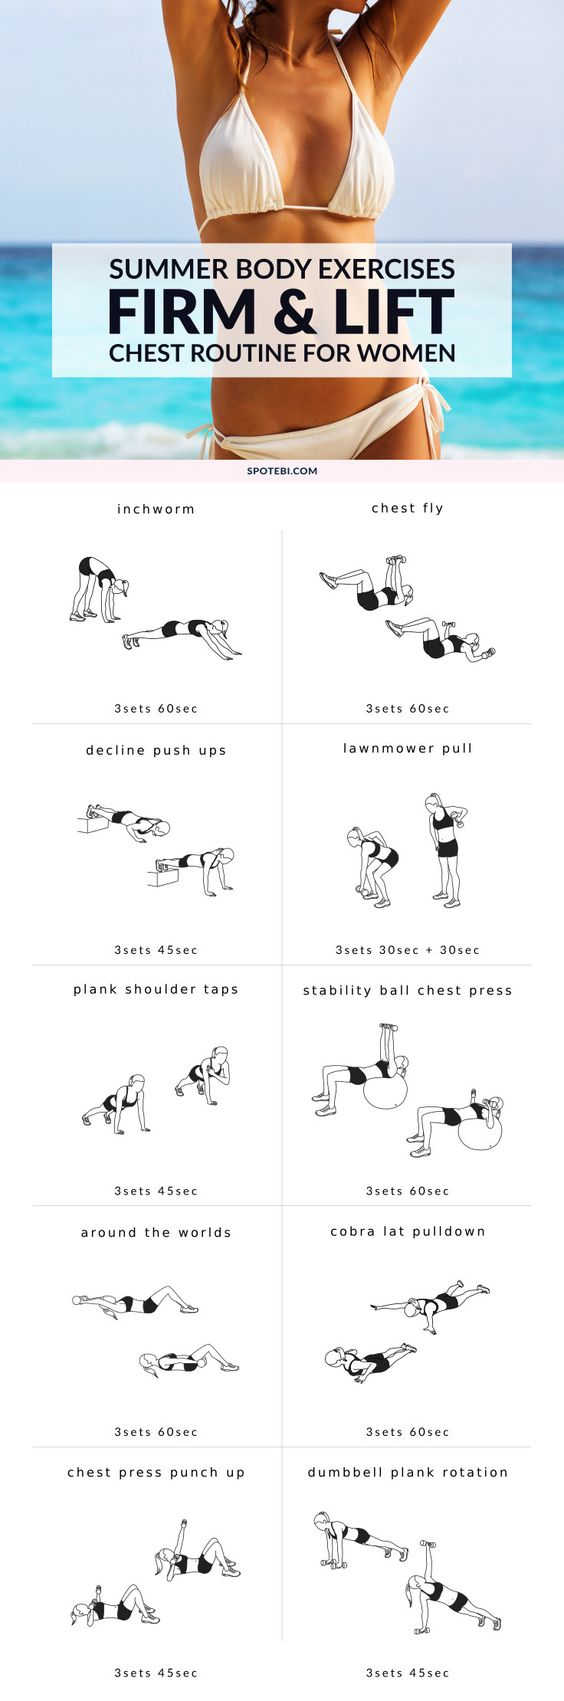 16 Intense Chest Workouts That Will Lift & Firm Up Your